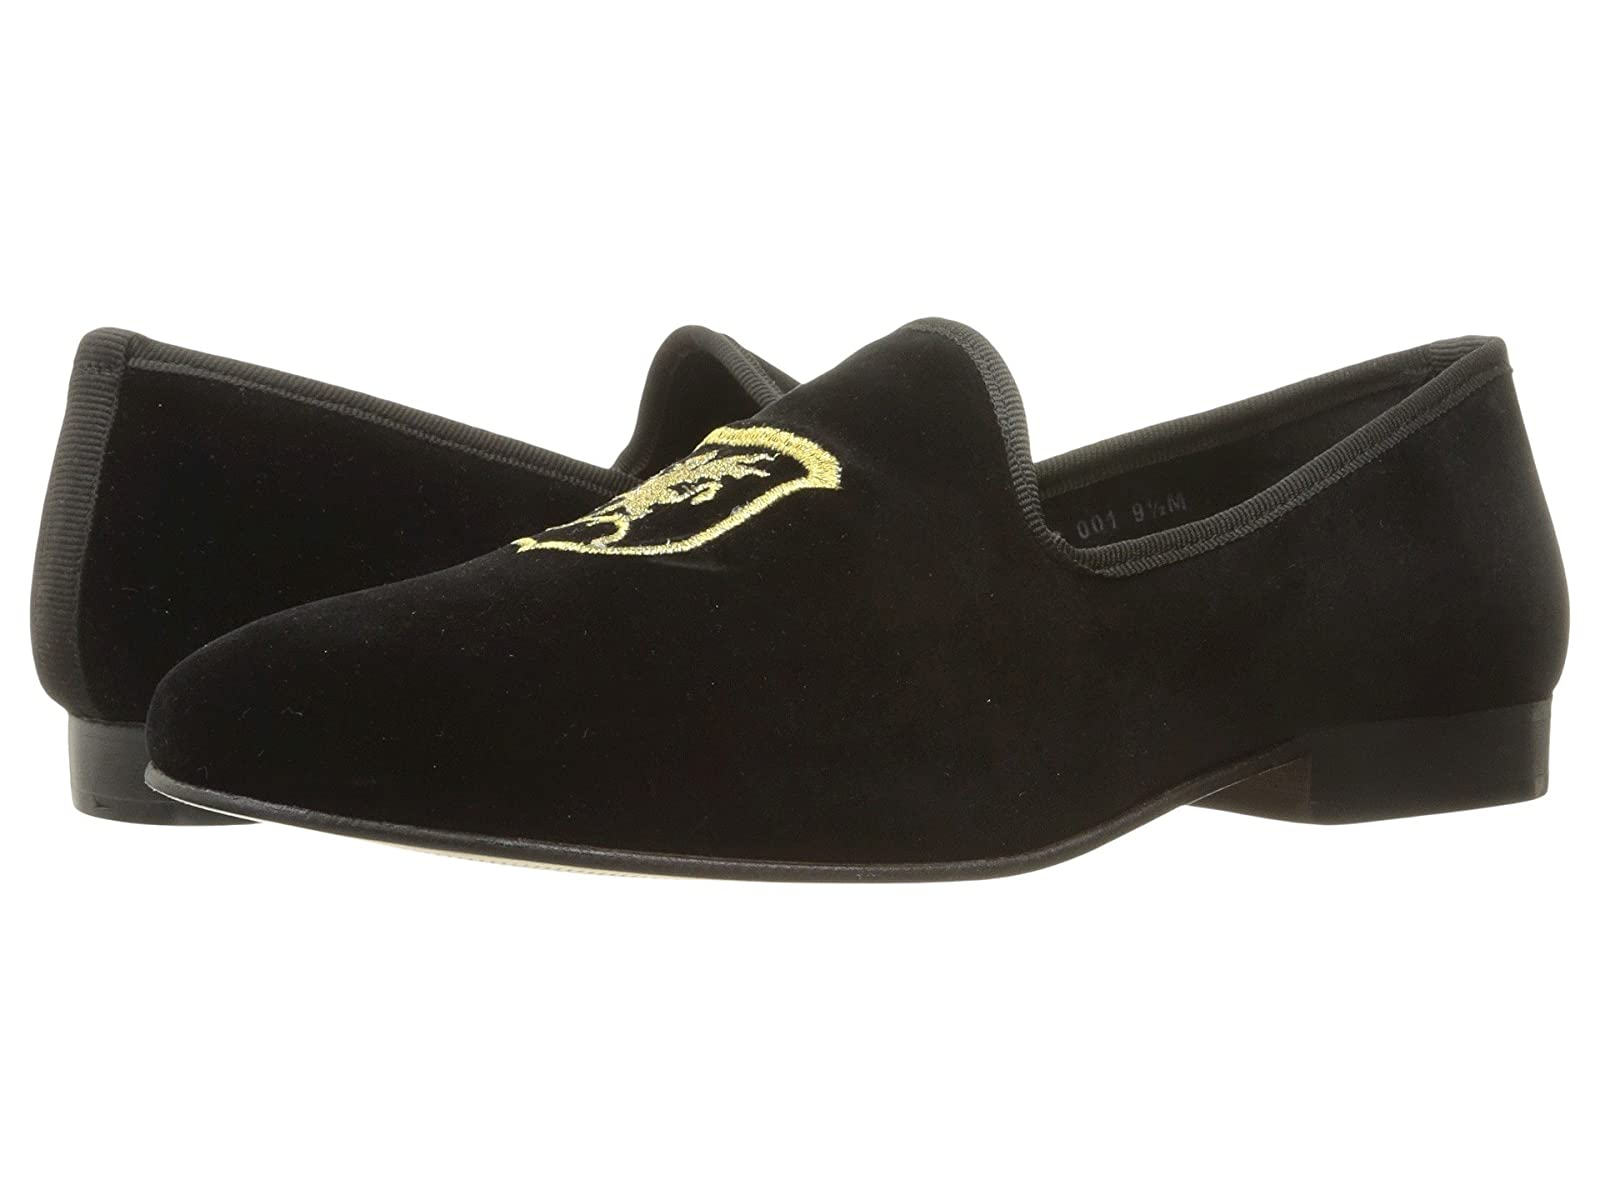 Stacy Adams VivaAtmospheric grades have affordable shoes